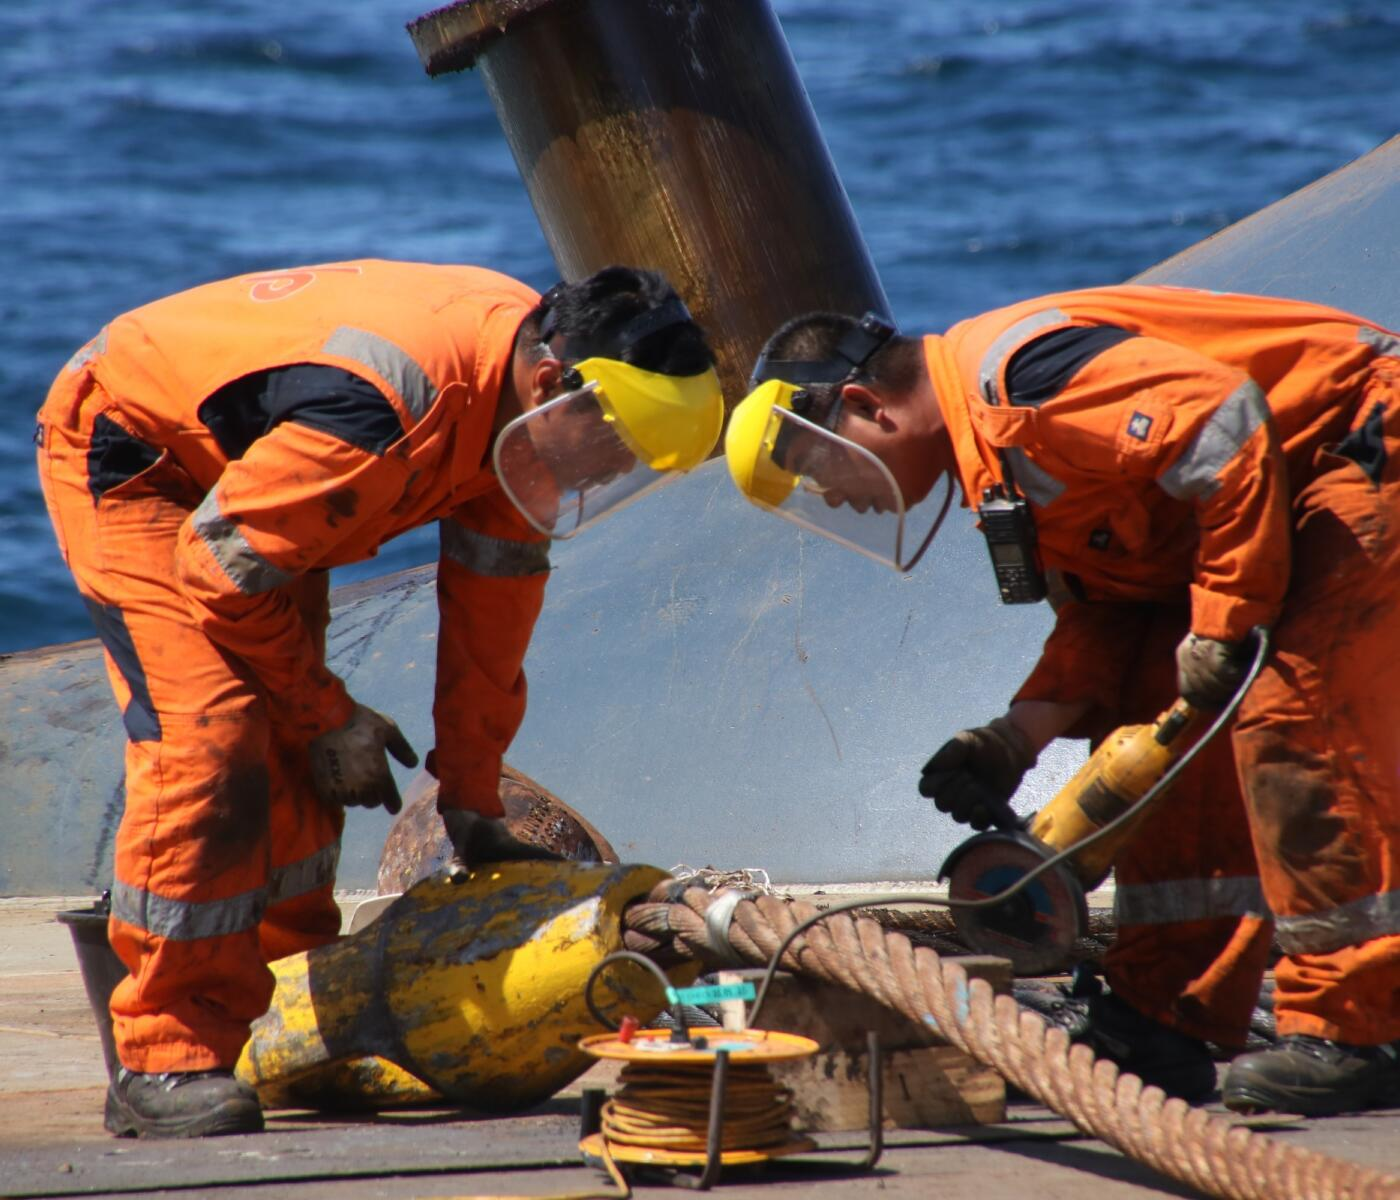 ALP-Keeper-crew-preparing-for-full-towing-gear-inspection-3.JPG